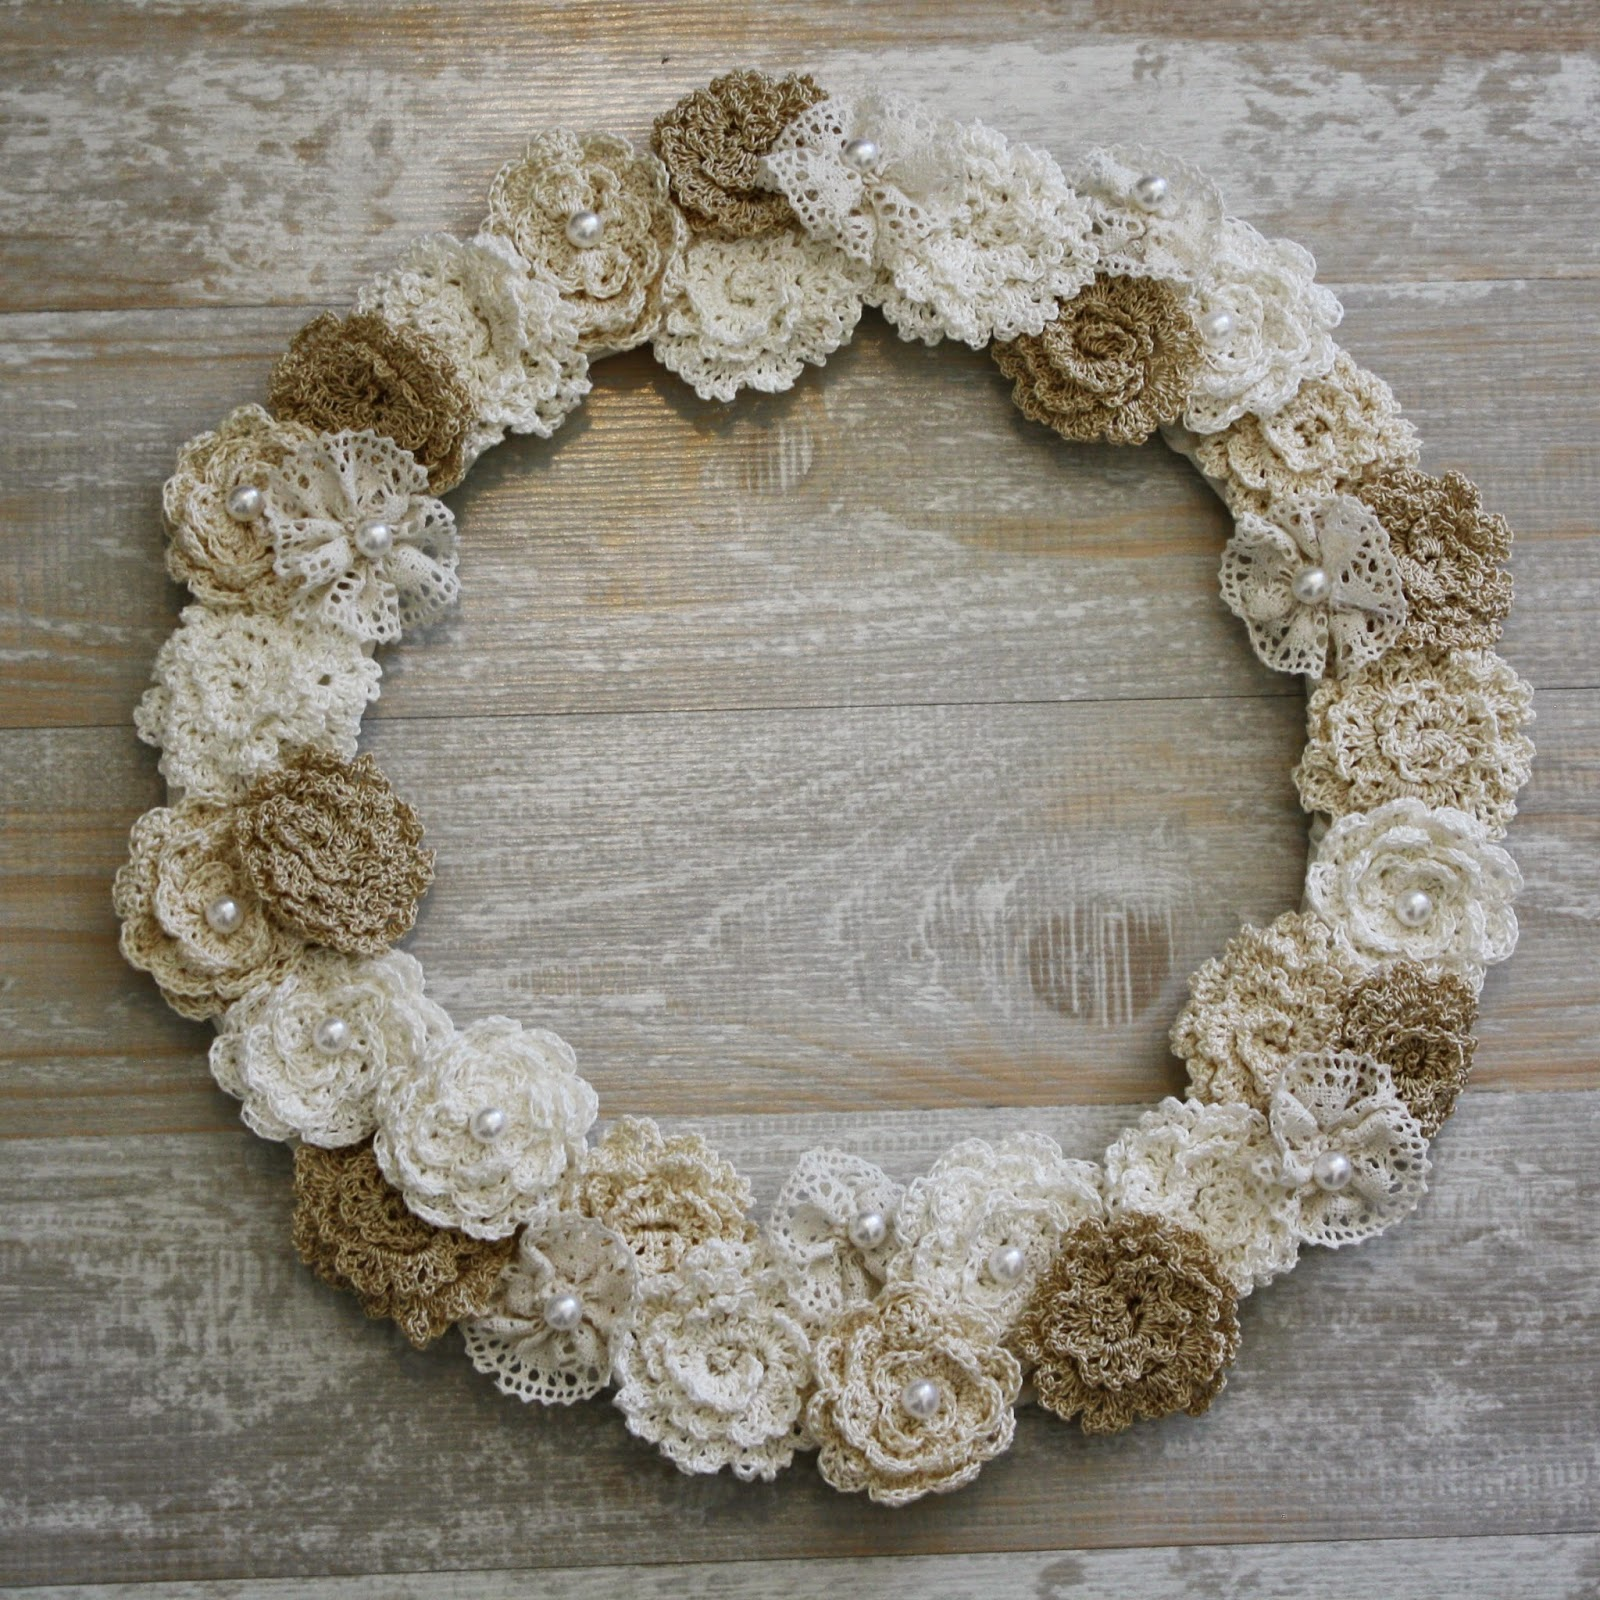 http://little-miss-stitcher.blogspot.com/2015/02/diy-lace-and-crochet-flower-wreath.html